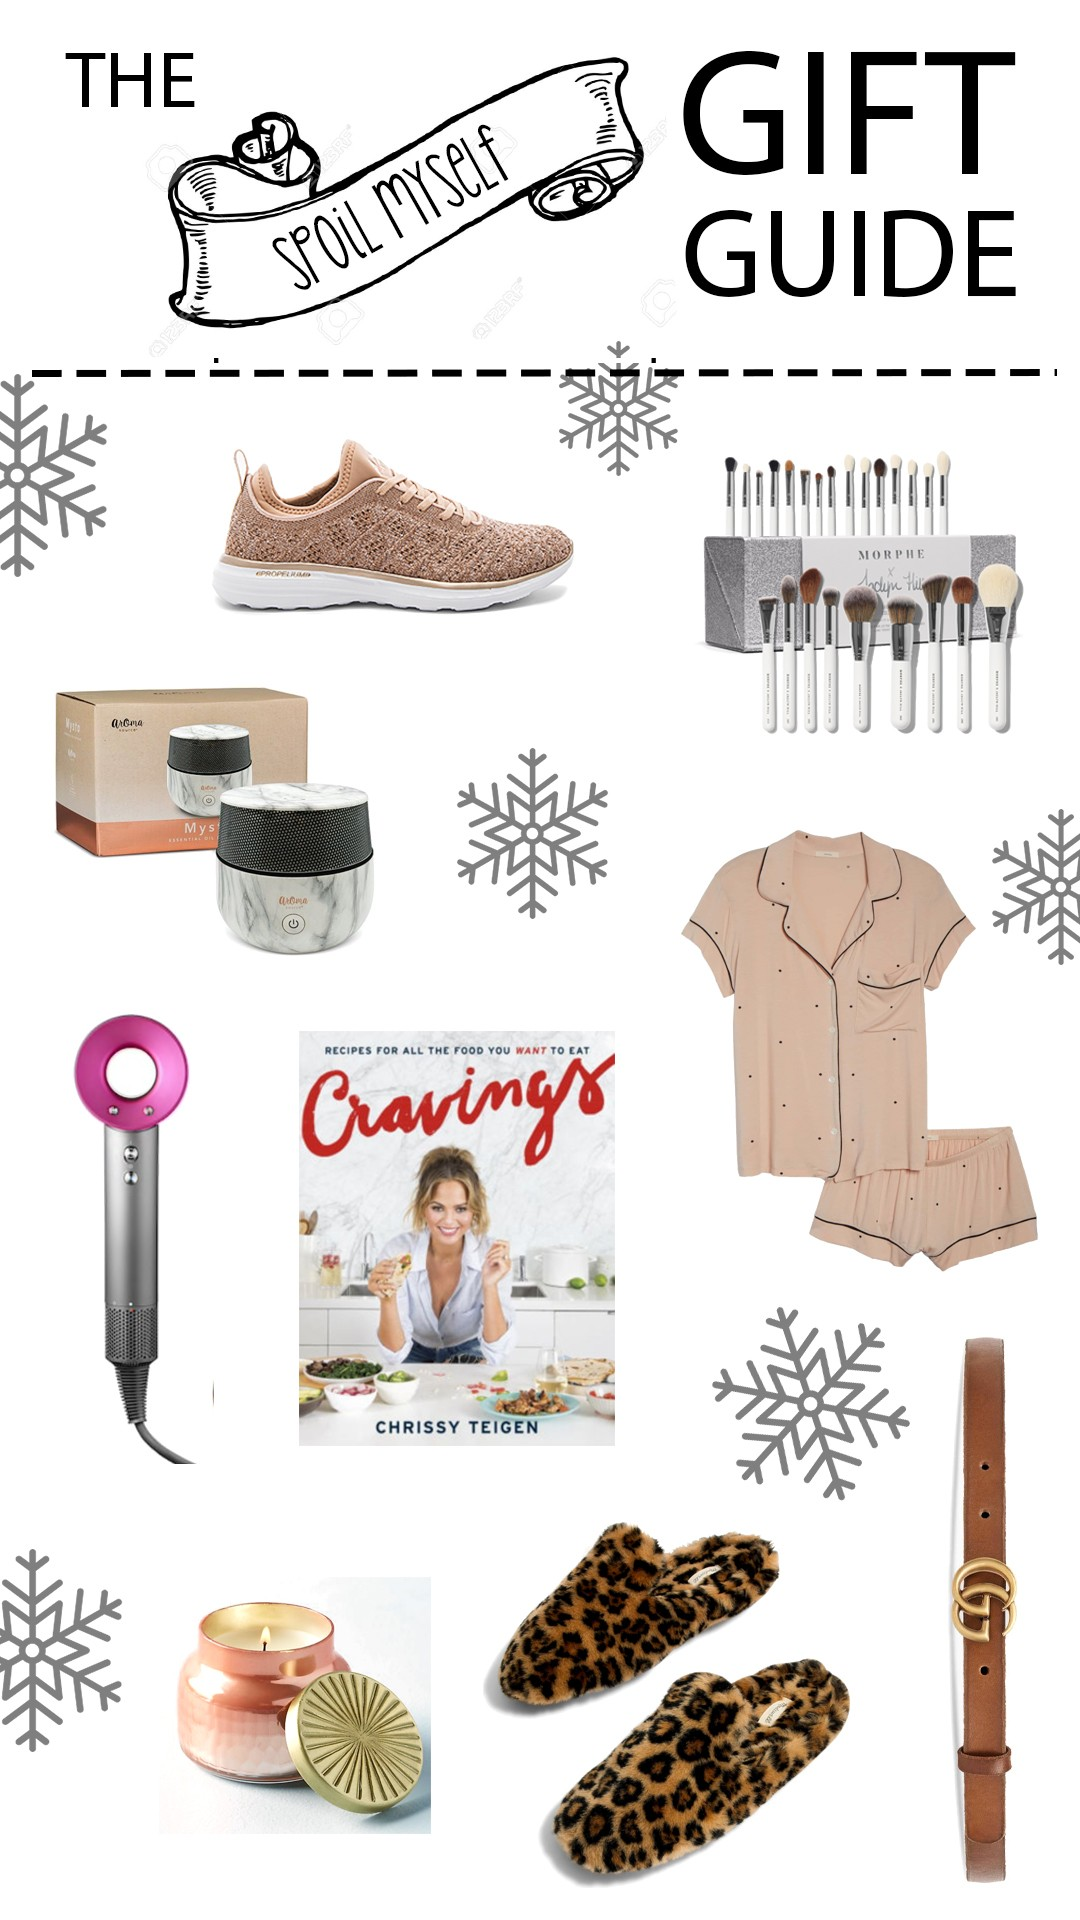 My Christmas Wish List.Gift Guide For Me My Christmas Wishlist Daily With Bailey